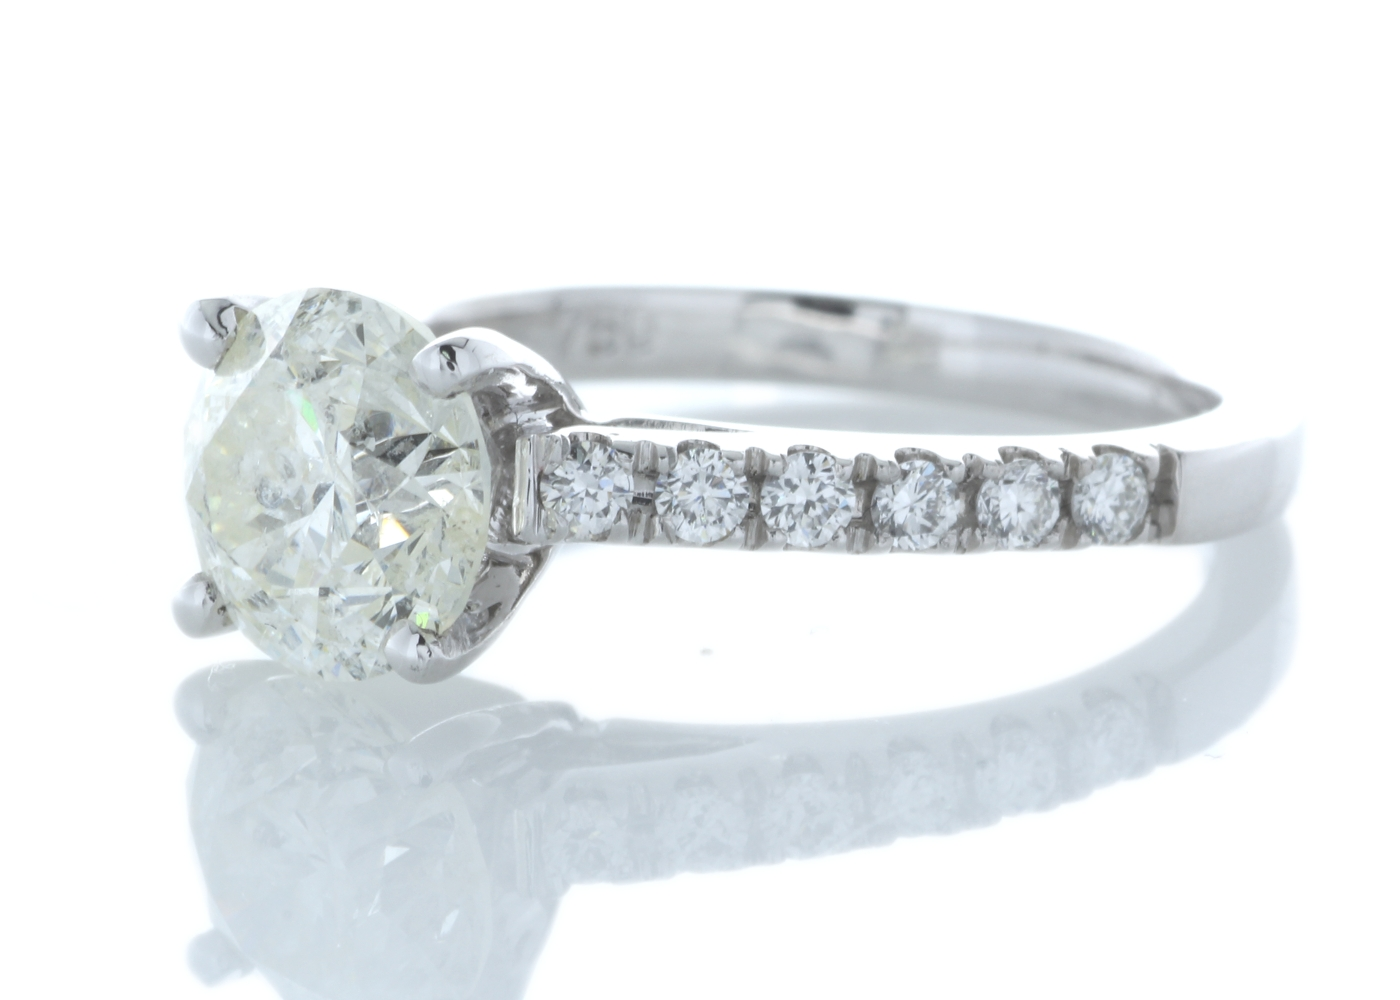 18ct White Gold Stone Set Shoulders Diamond Ring 1.92 Carats - Image 2 of 6